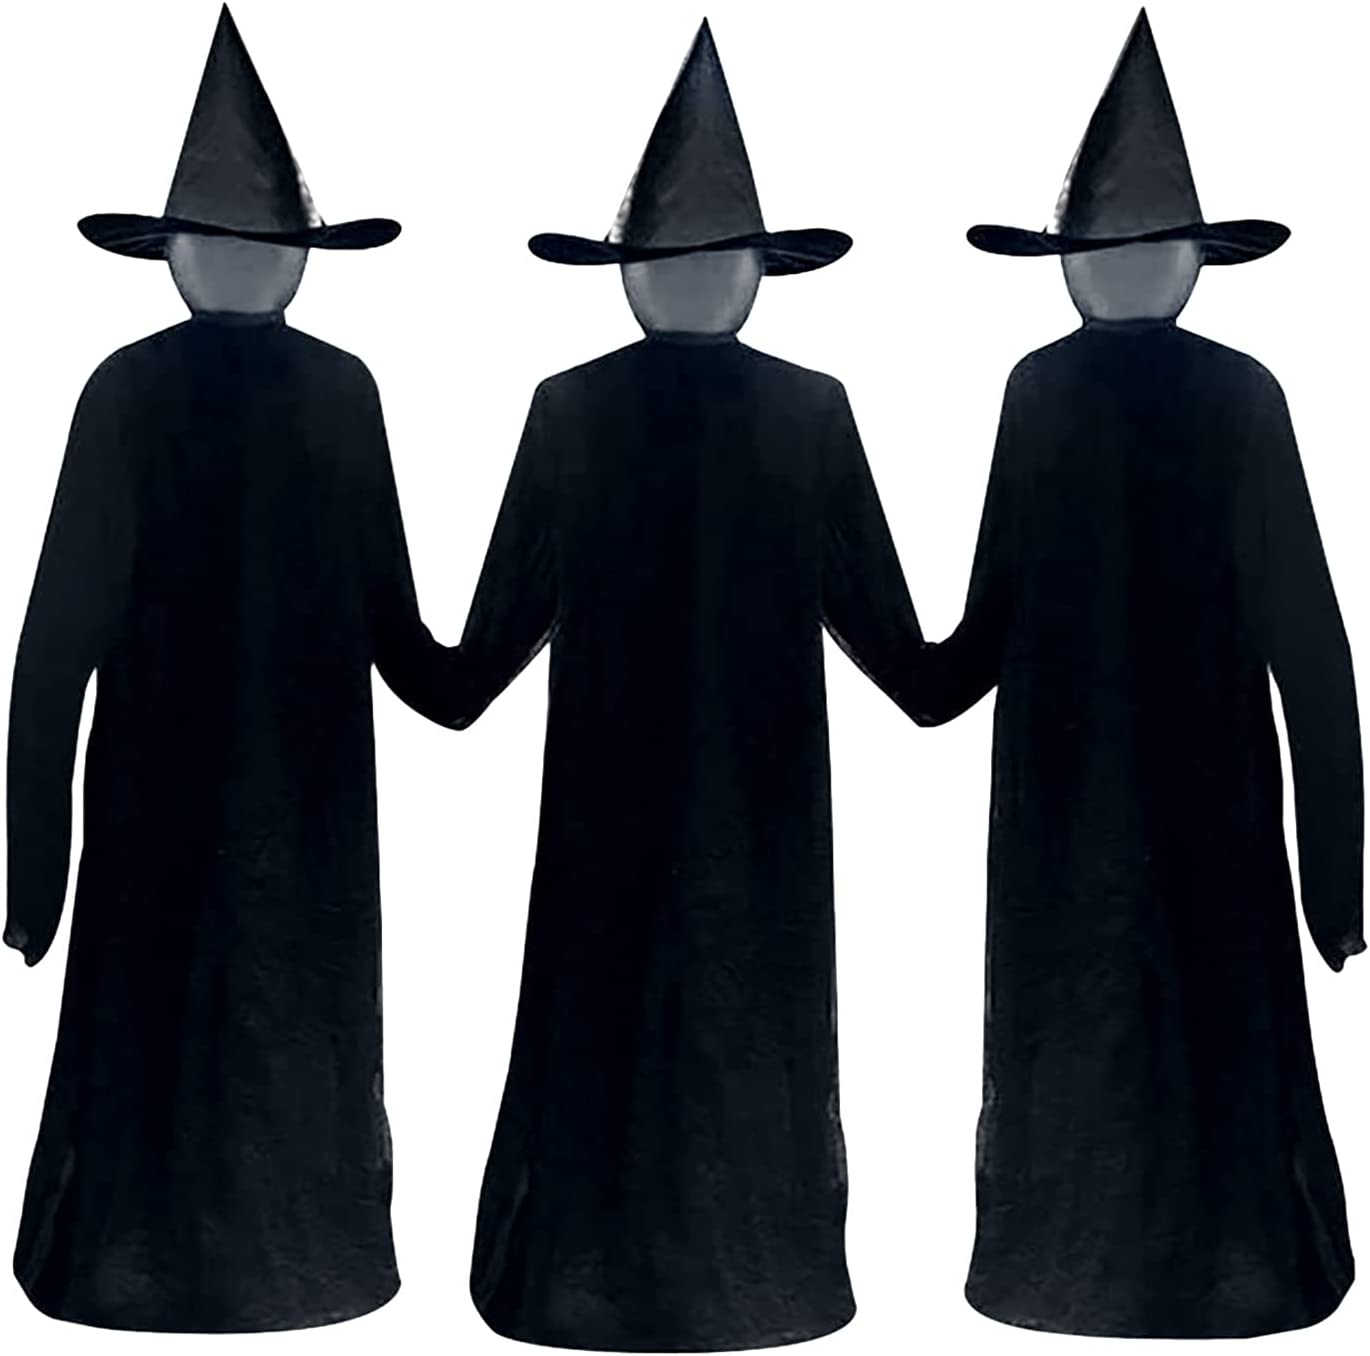 Great interest Halloween Holding Hands Witches Glowing Light-UP Mesa Mall Witch Sta with